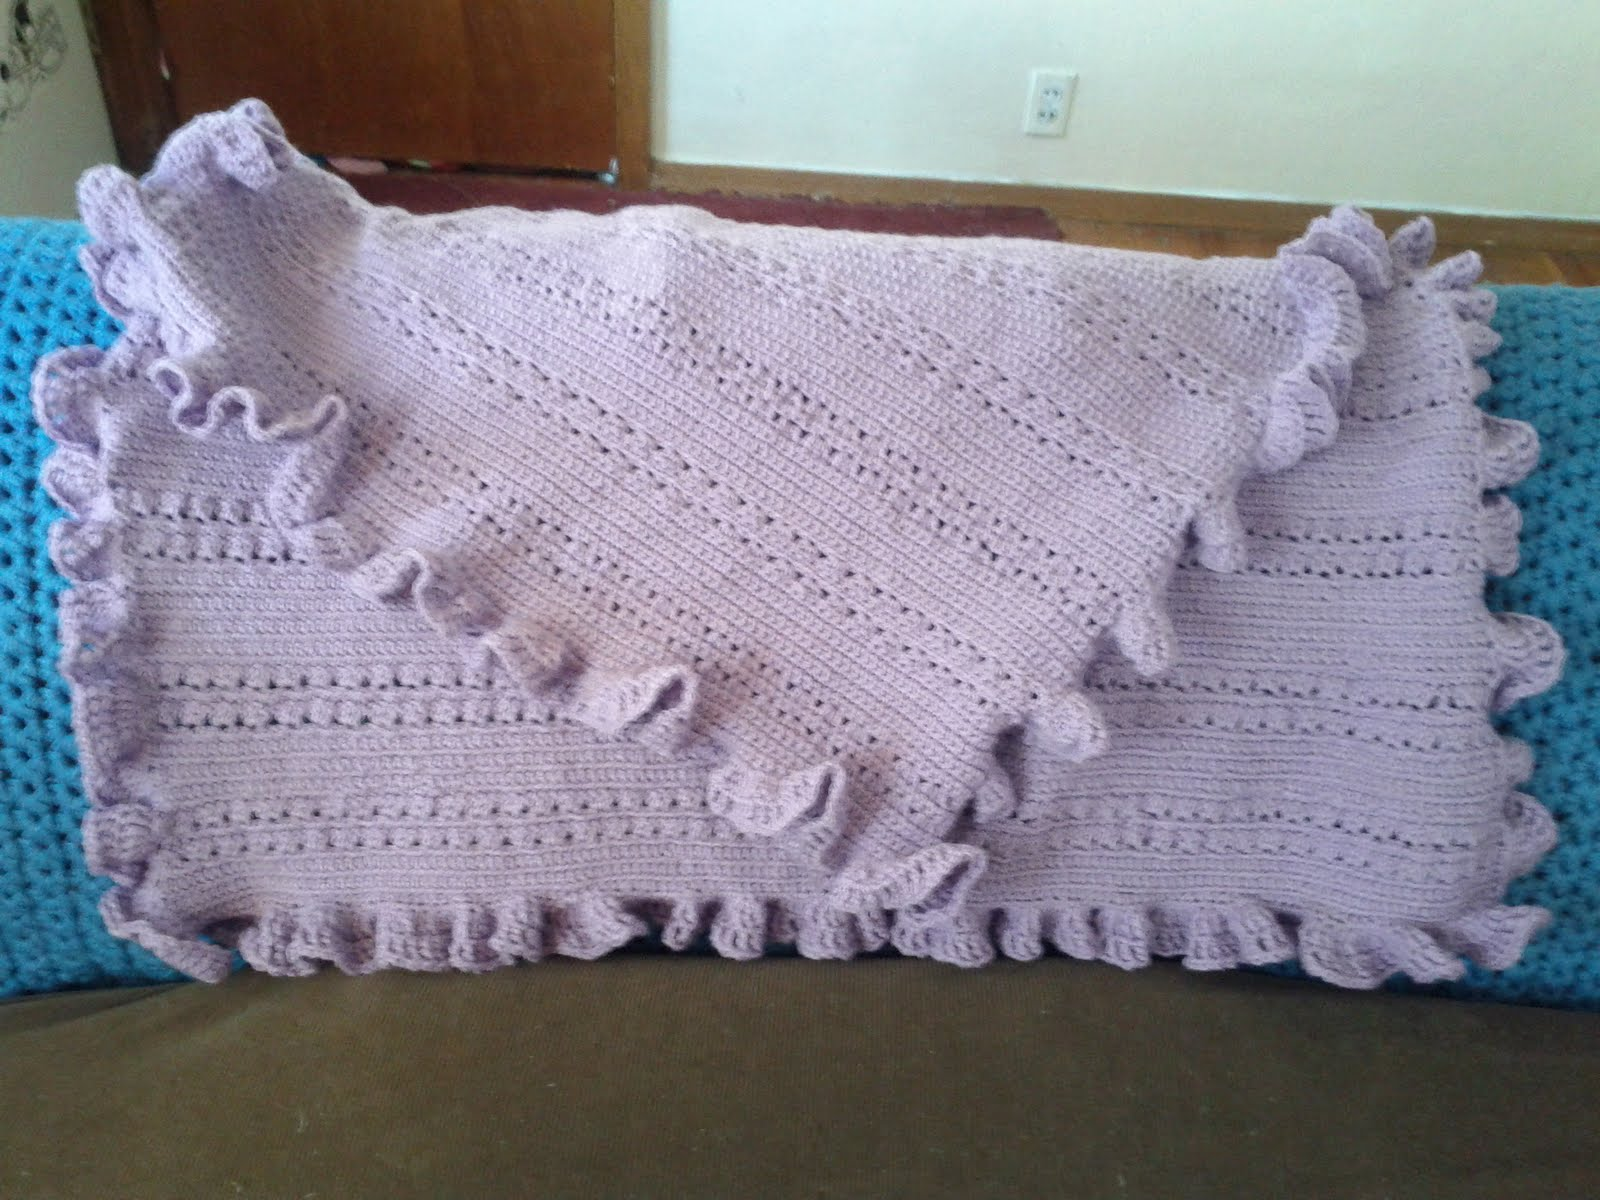 Free Crochet Pattern Ruffle Edging : CROCHET RUG PATTERNS FREE - Crochet Club